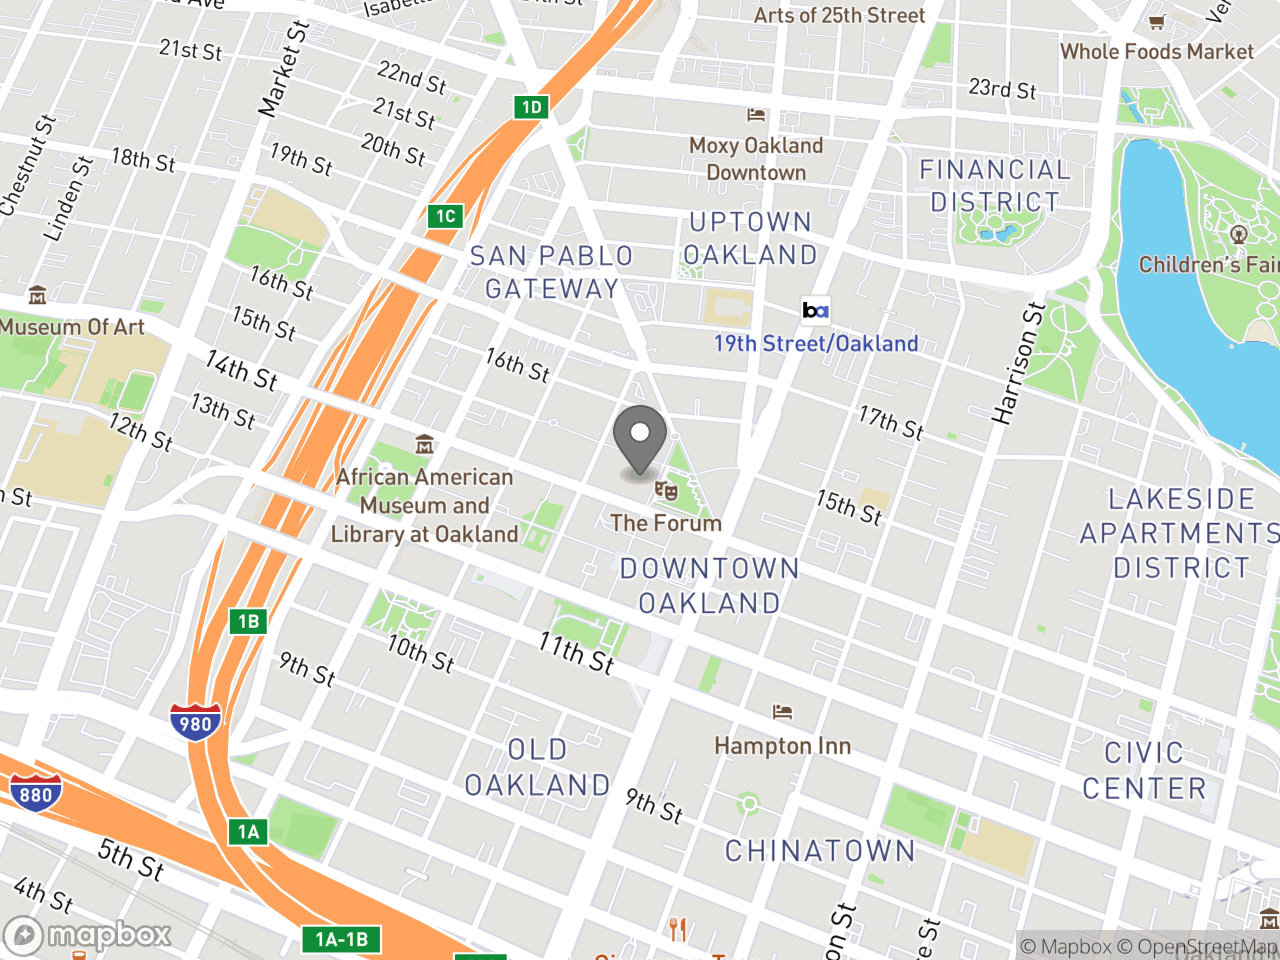 Map location for Safety and Services Oversight Commission Meeting for November 25, 2019, located at 1 Frank H. Ogawa Plaza in Oakland, CA 94612,